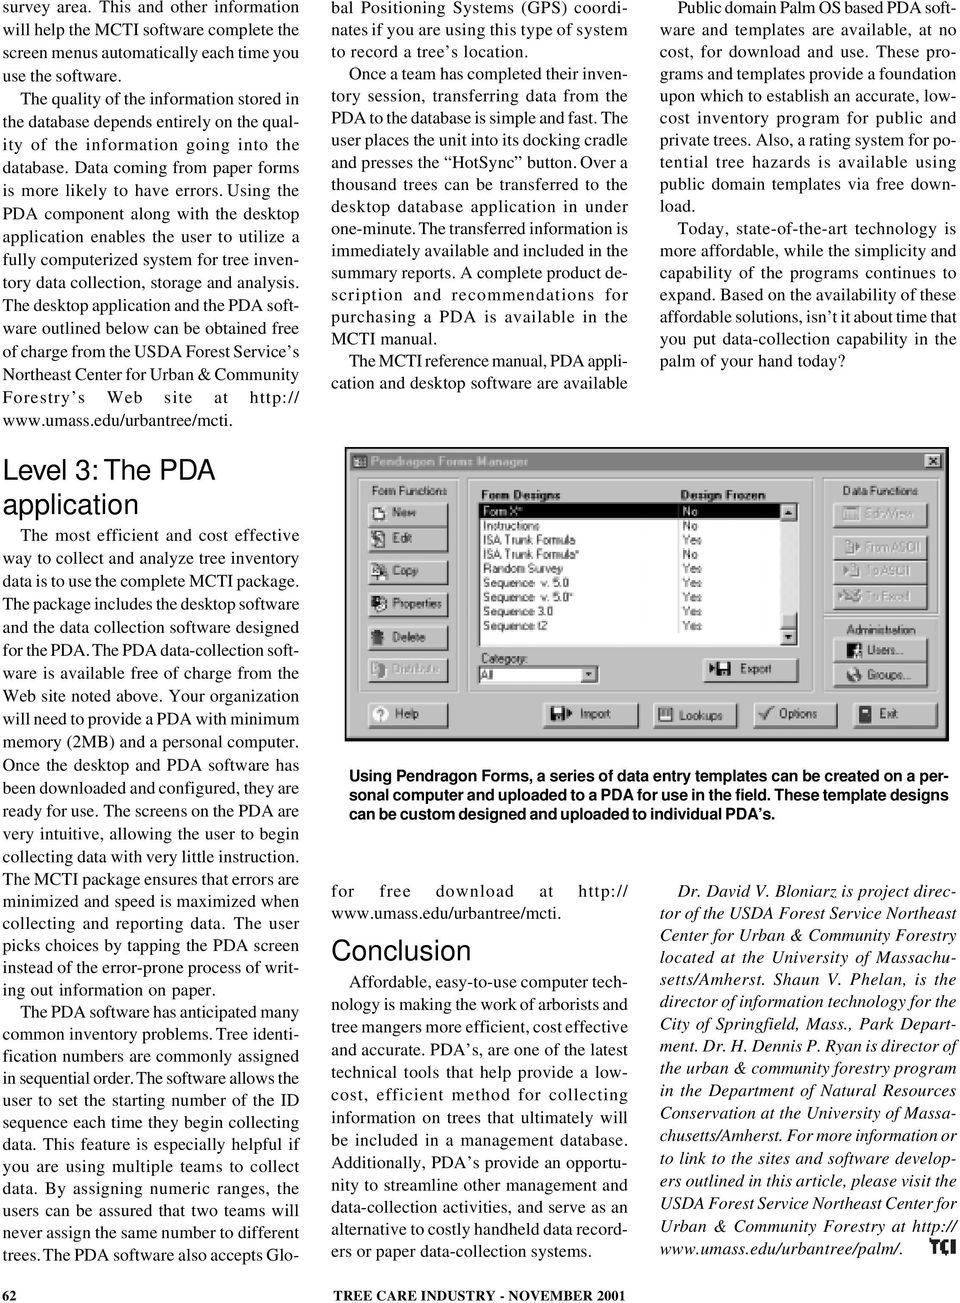 Using the PDA component along with the desktop application enables the user to utilize a fully computerized system for tree inventory data collection, storage and analysis.